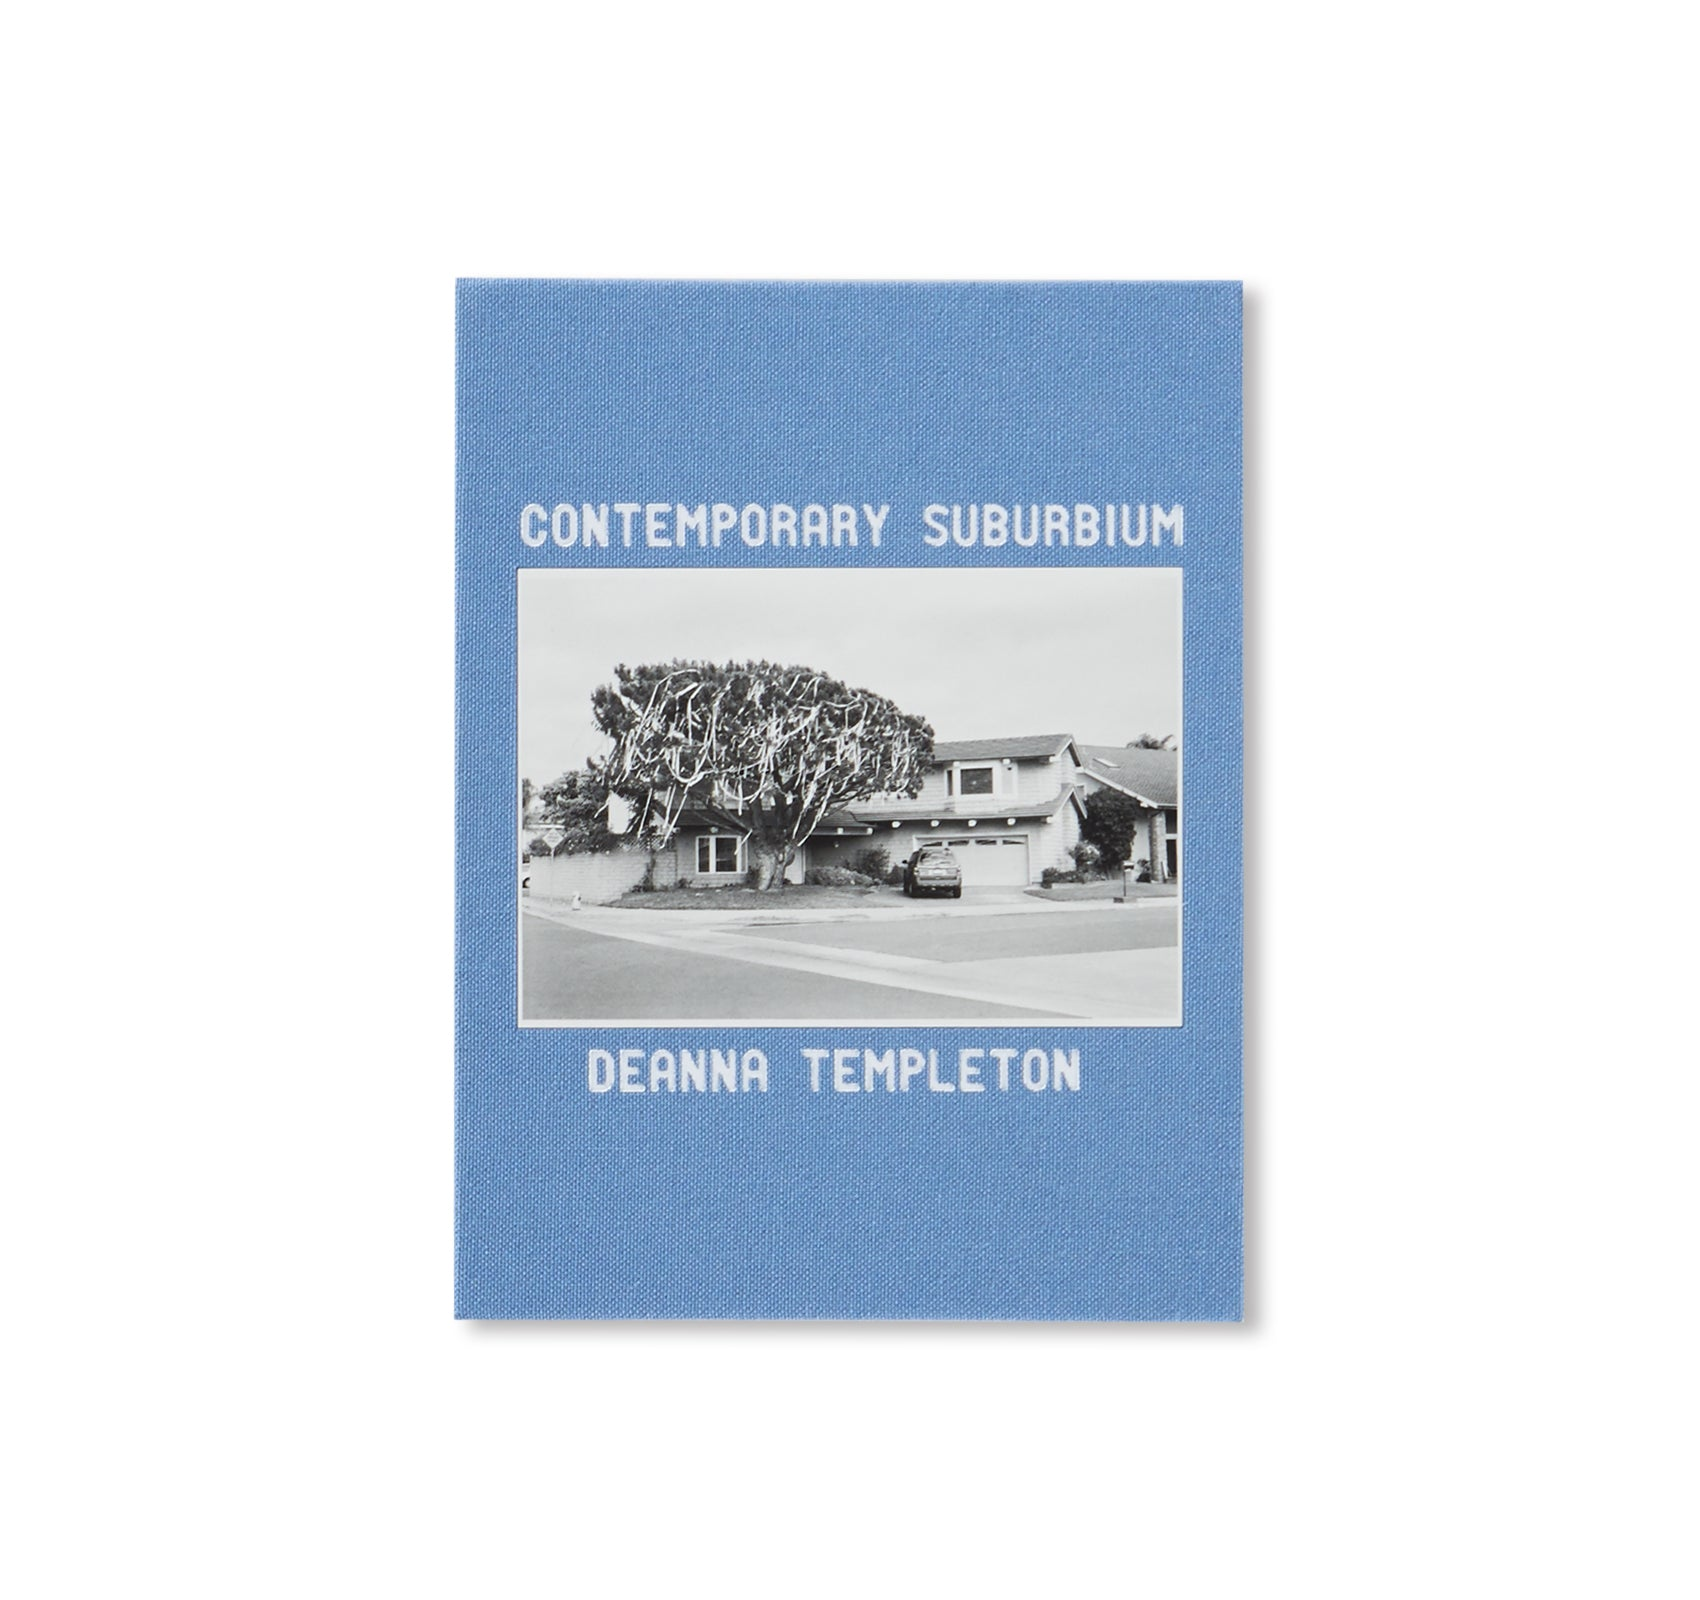 CONTEMPORARY SUBURBIUM by Ed & Deanna Templeton